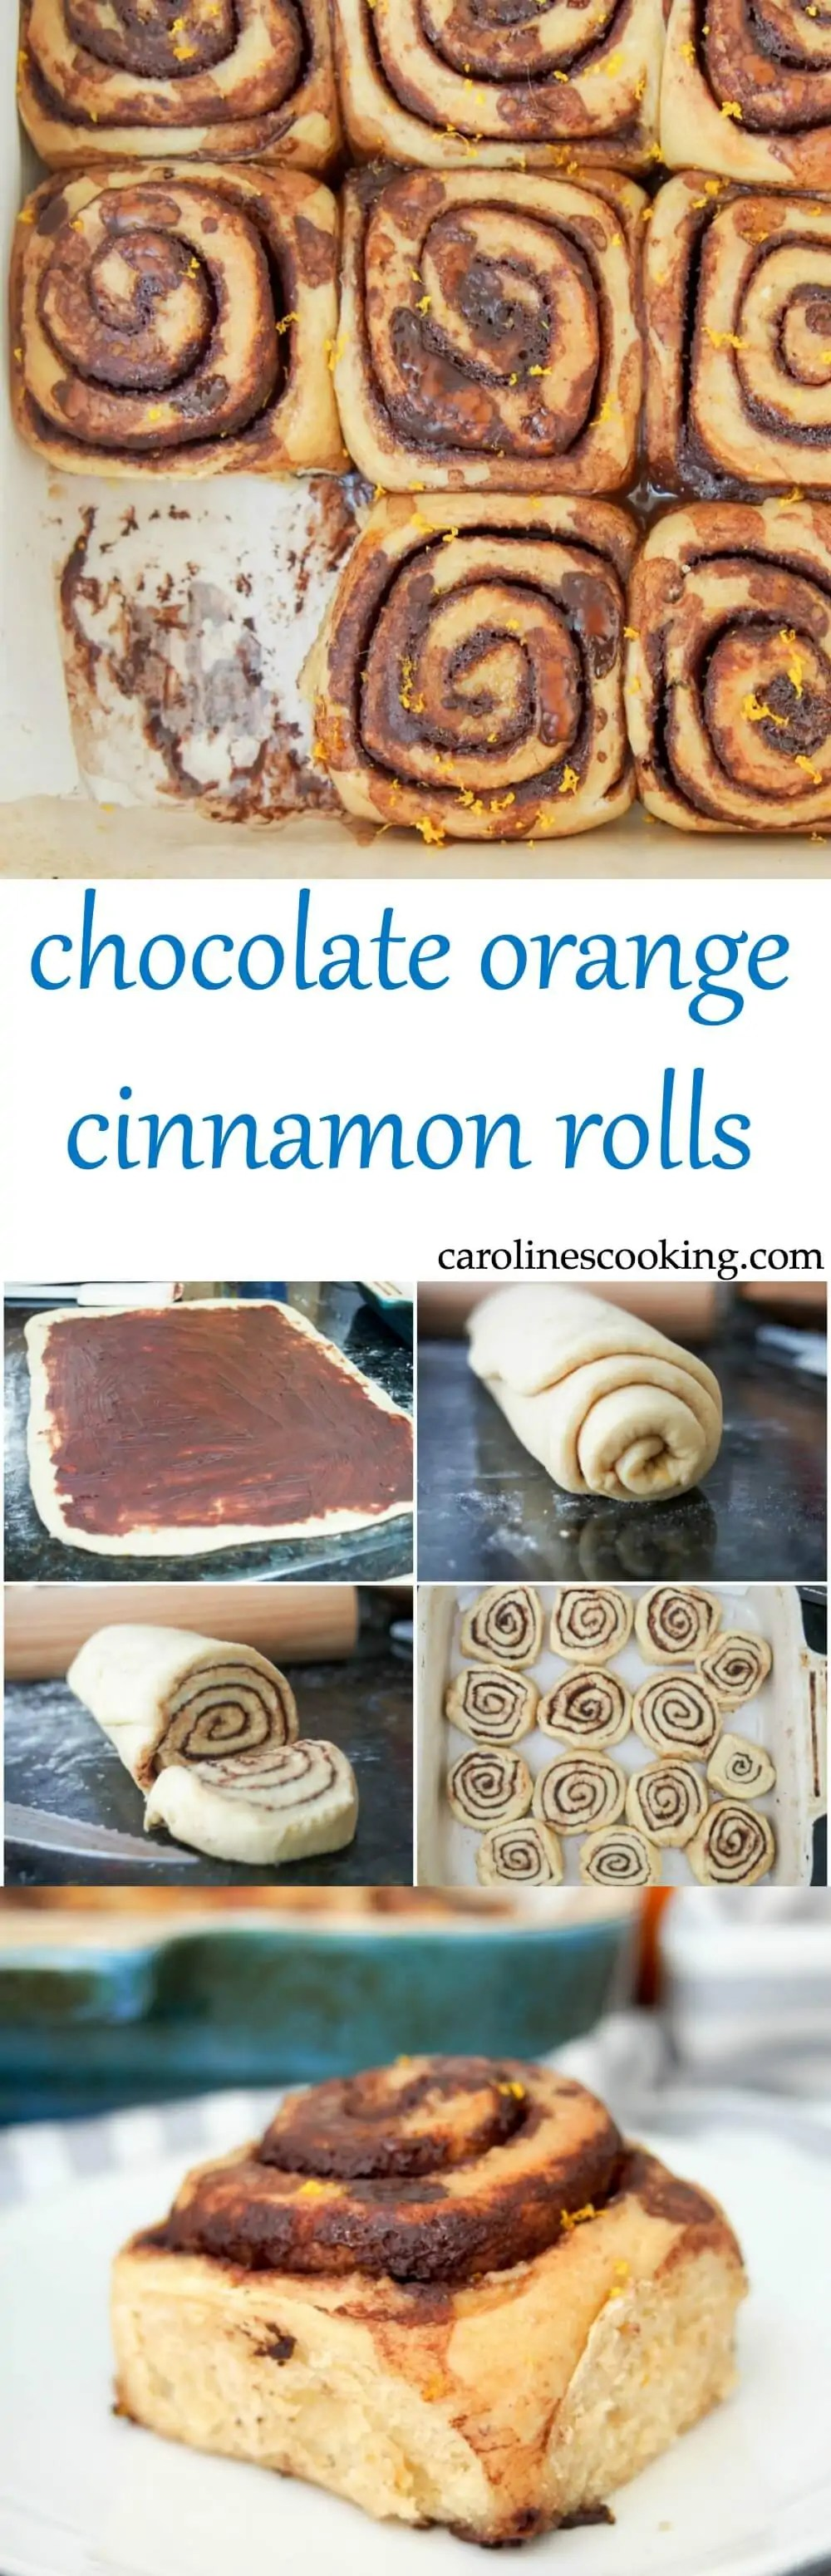 chocolate orange cinnamon rolls - Chocolate and orange are a perfect match and these chocolate orange cinnamon rolls combine them perfectly. Soft, gently sweet and with that touch of citrus. Such a delicious snack or brunch treat (but relatively healthy too!)